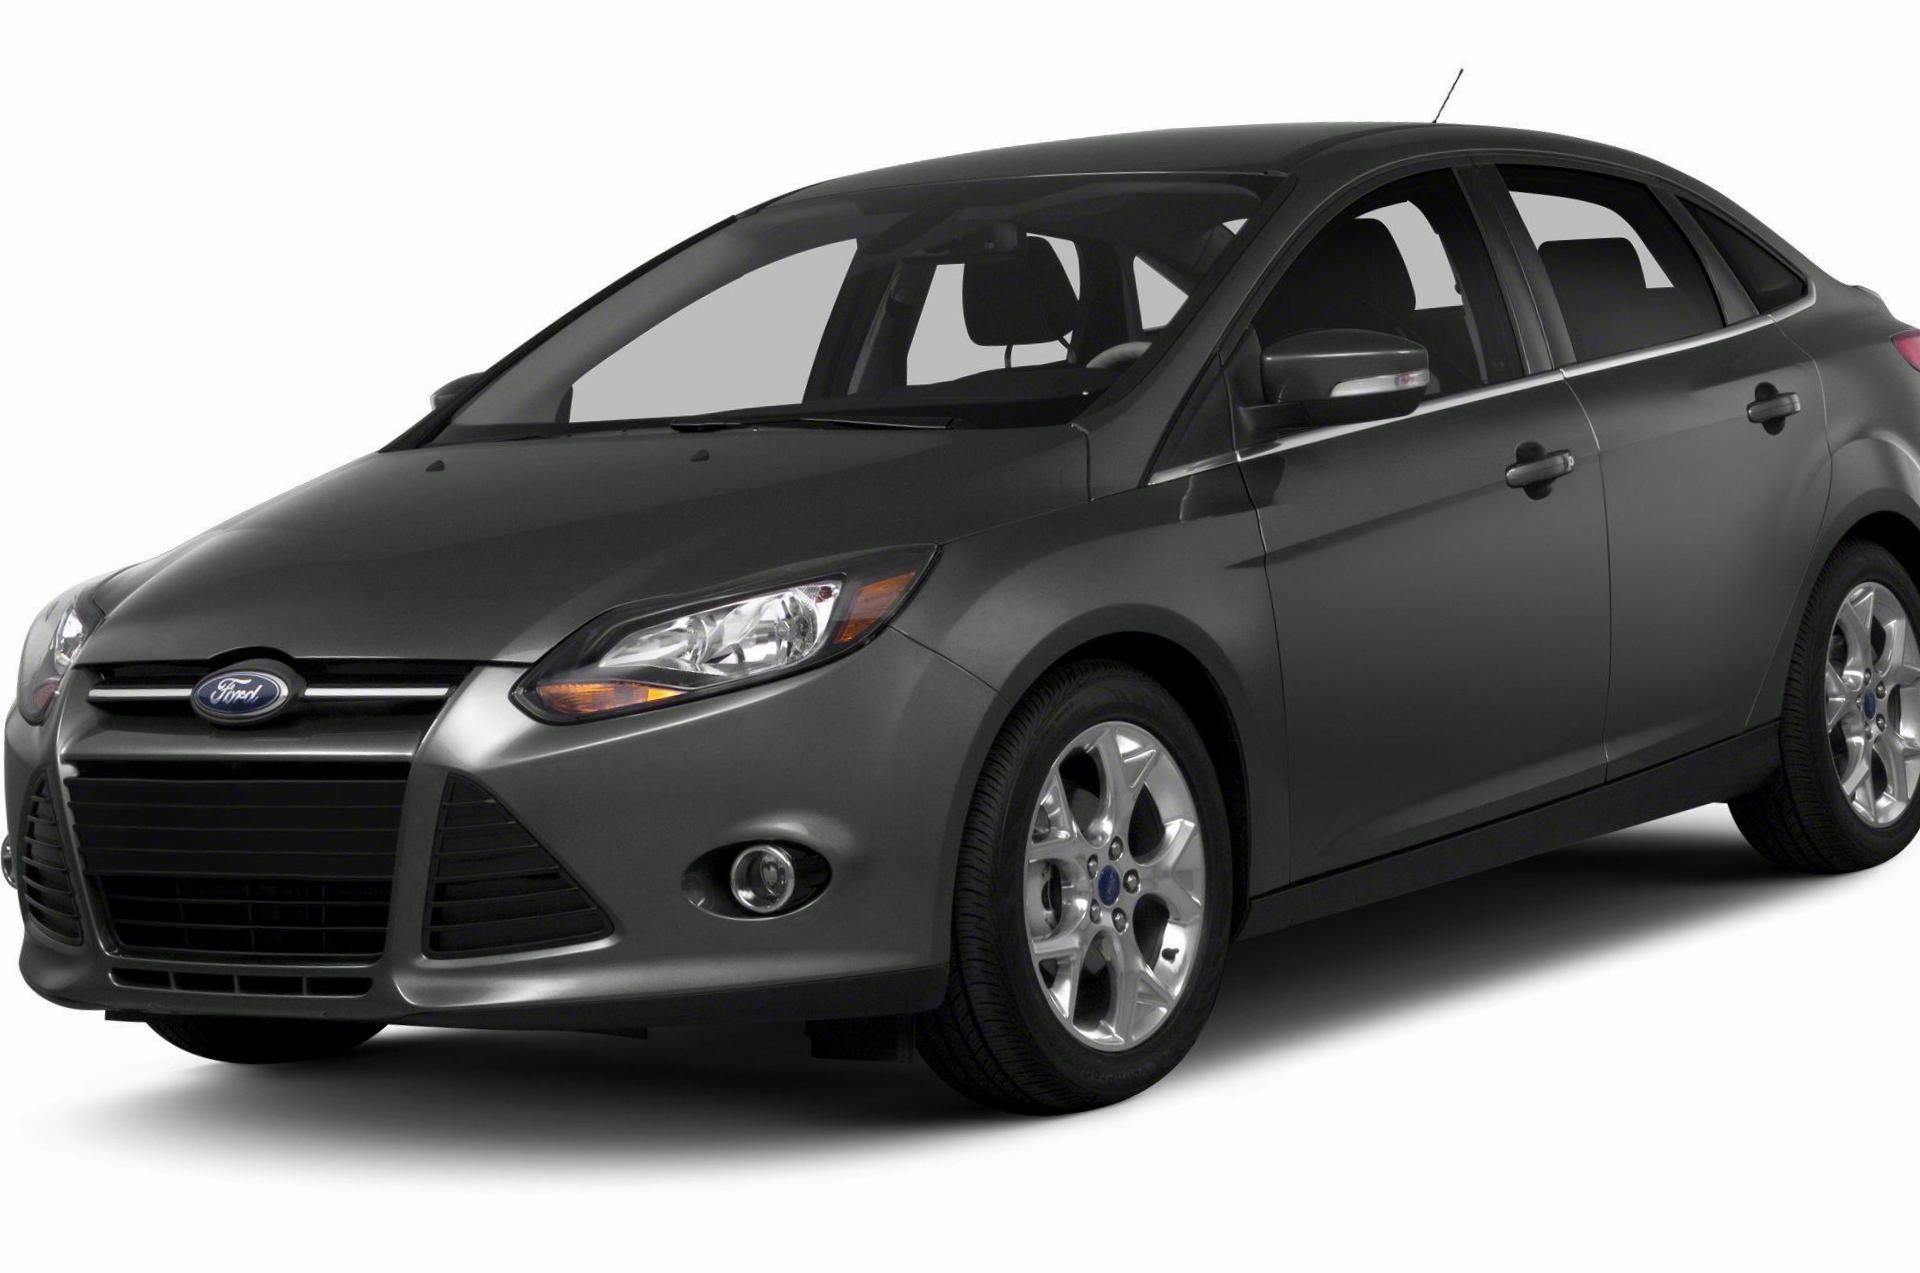 Ford Focus Sedan models 2008